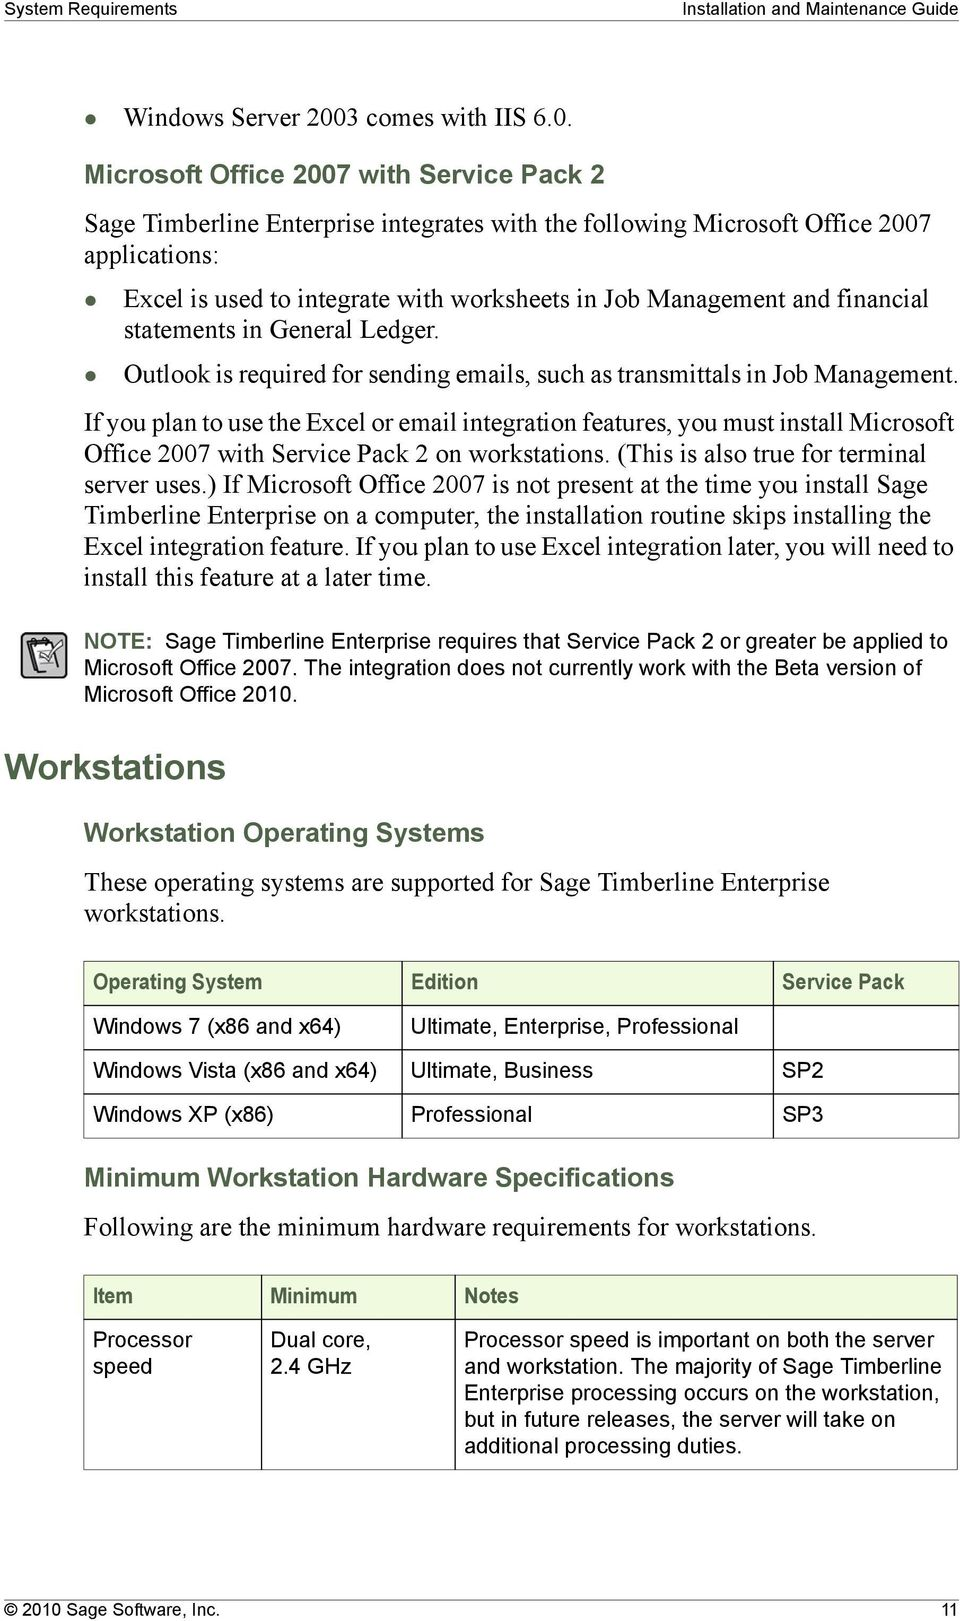 Microsoft Office 2007 with Service Pack 2 Sage Timberline Enterprise integrates with the following Microsoft Office 2007 applications: Excel is used to integrate with worksheets in Job Management and